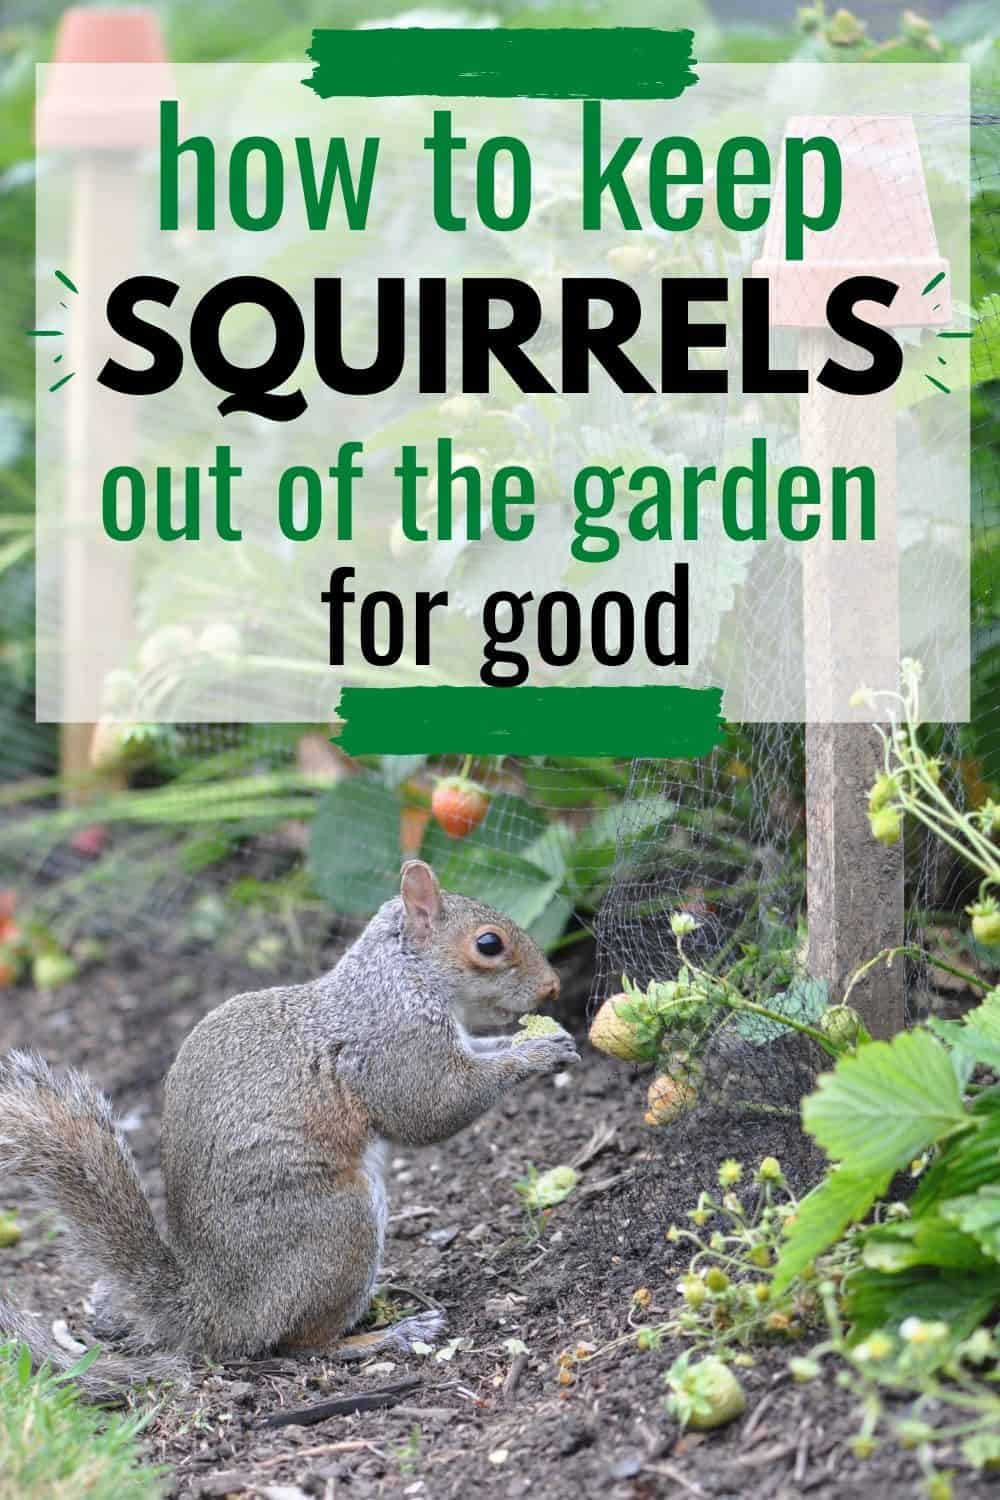 How to keep squirrels out of the garden for good